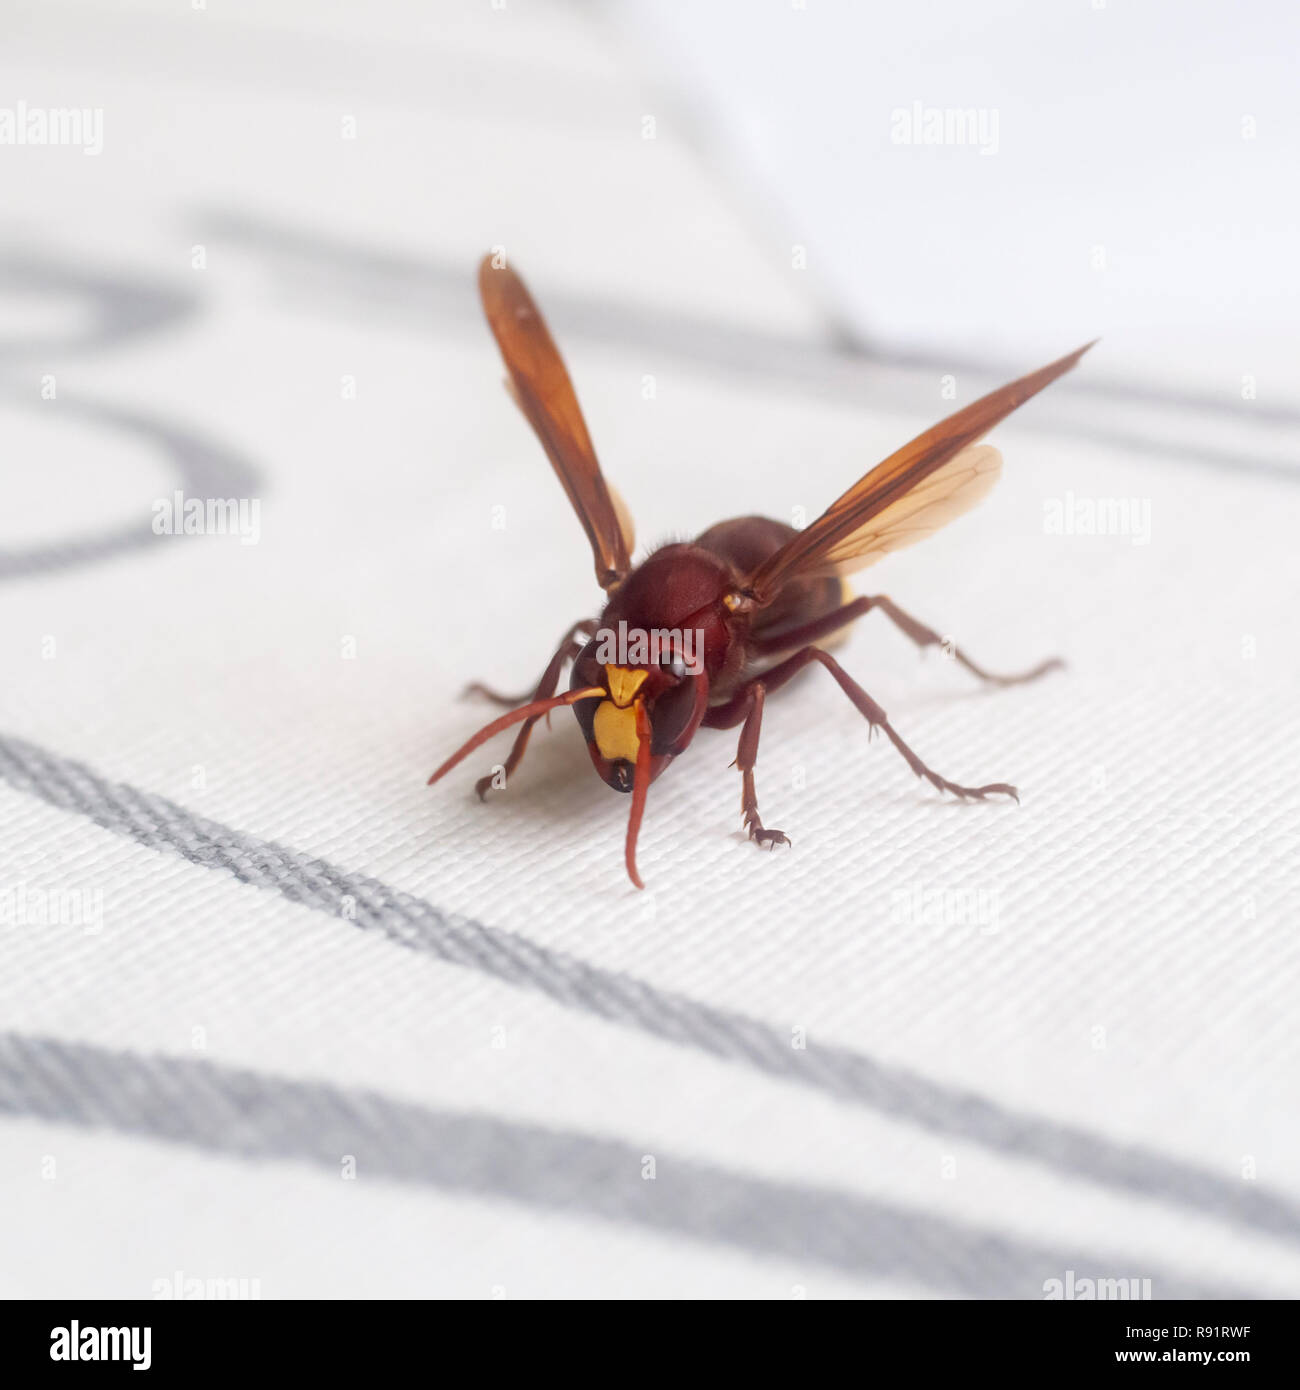 close up of an Oriental hornet, (Vespa orientalis) on white background. Oriental hornet, is a social insect of the family Vespidae. The Oriental horne - Stock Image